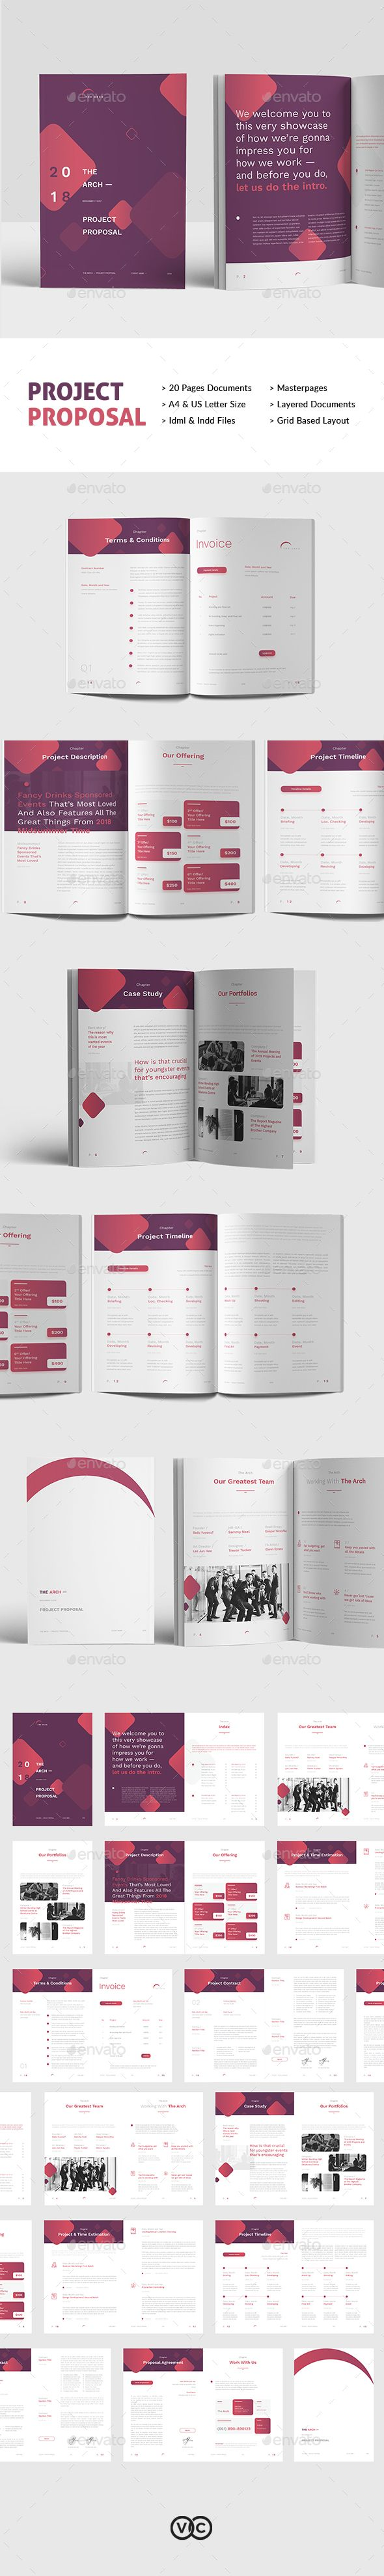 project proposal is editorial layout template with 20pp indesign